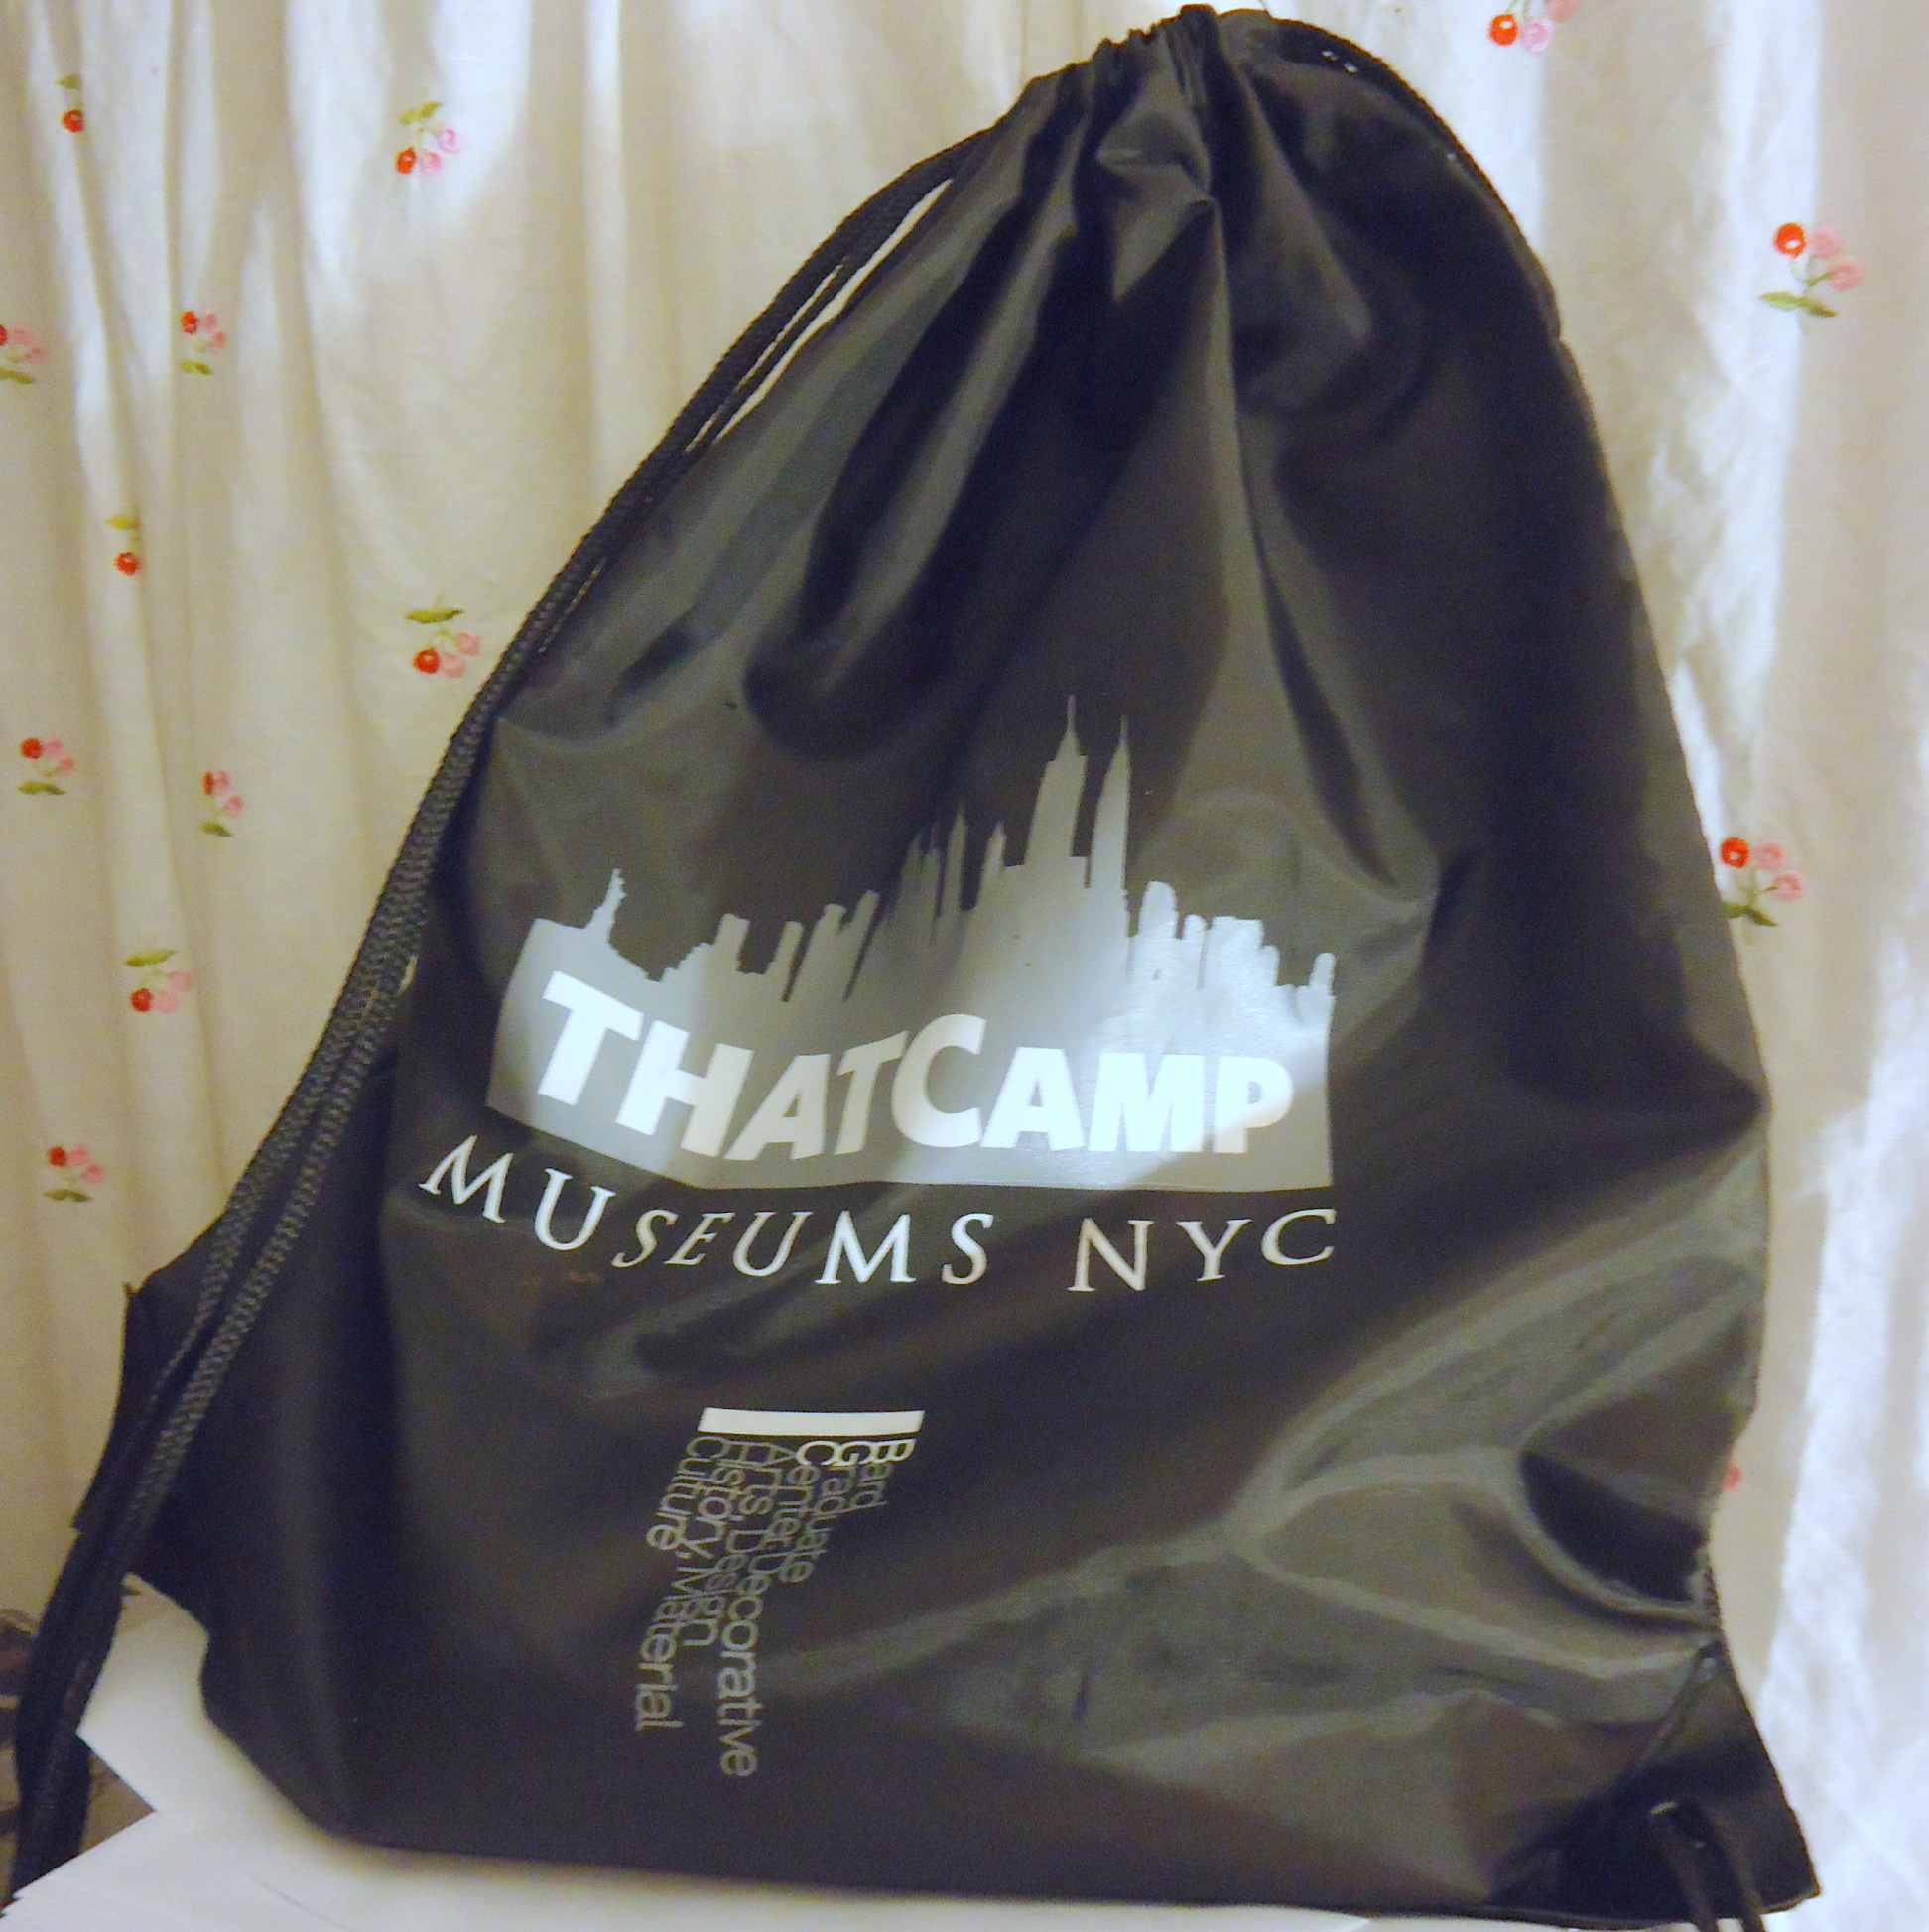 THATCamp Museums NYC souvenir bag